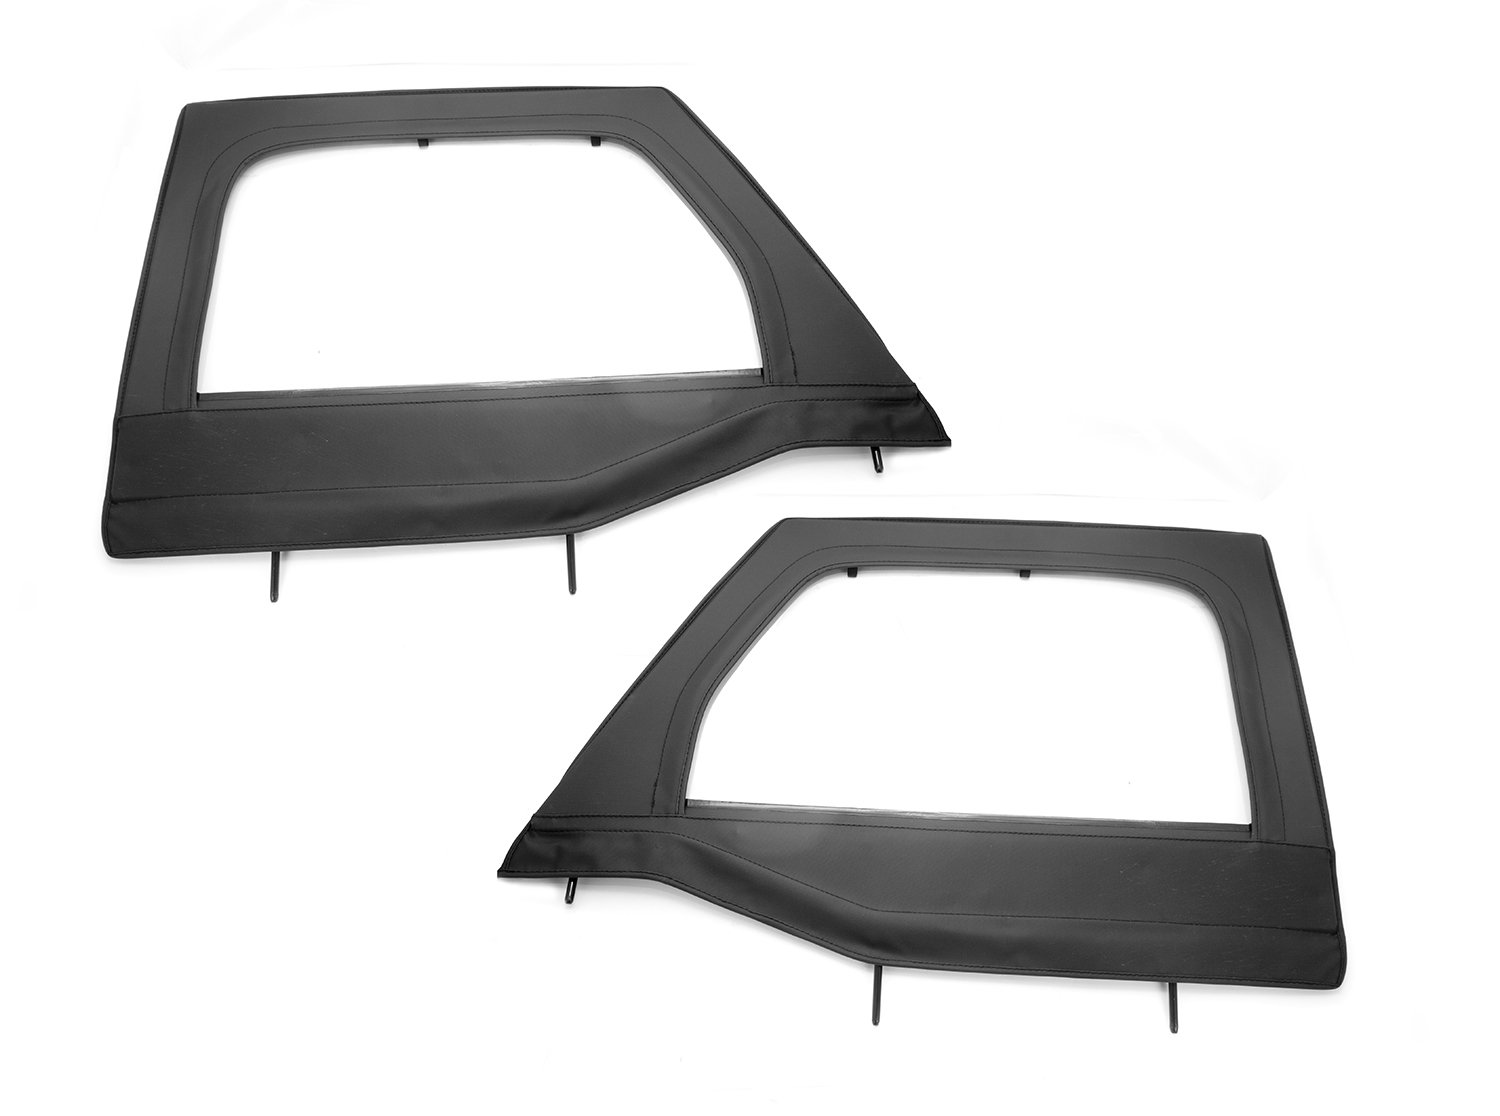 Amazon.com Rugged Ridge 13711.15 Black Front Upper Soft Door - Pair Automotive  sc 1 st  Amazon.com & Amazon.com: Rugged Ridge 13711.15 Black Front Upper Soft Door - Pair ...